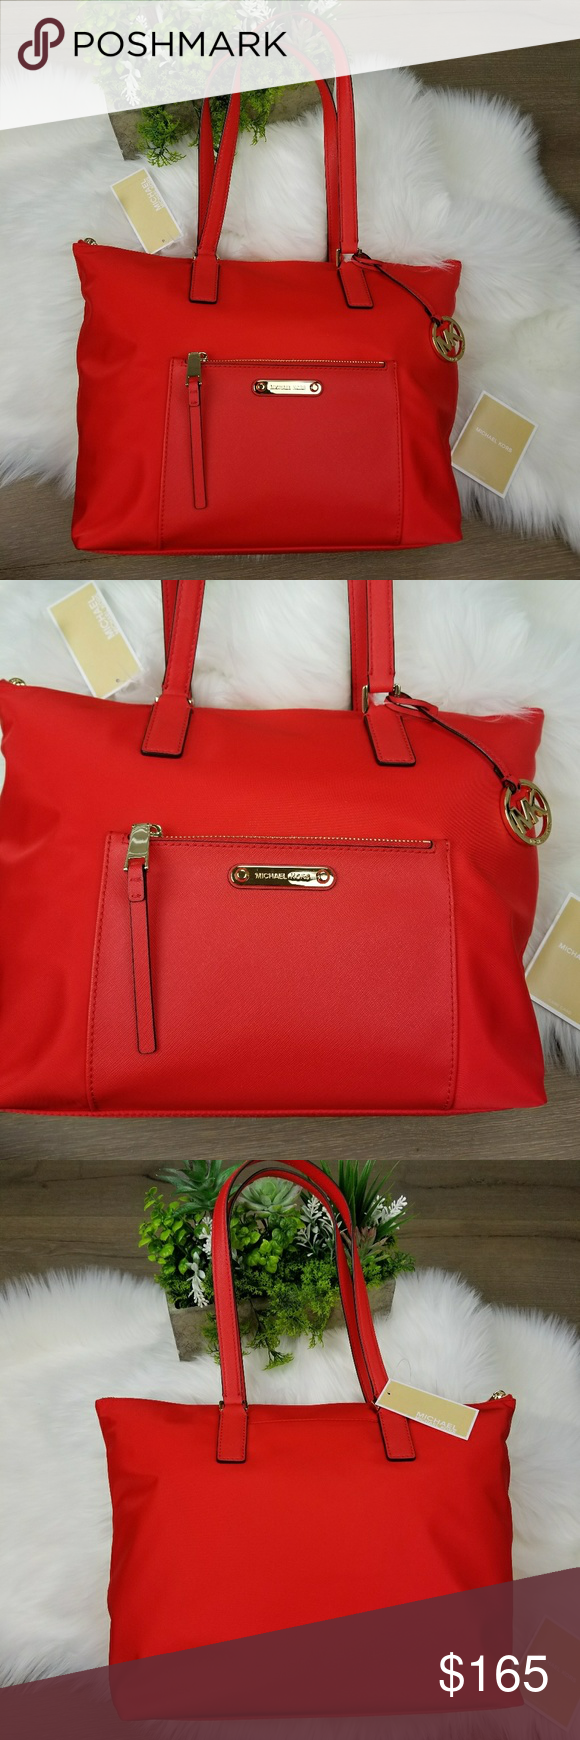 9e9f6b76ac4f NWT Michael Kors Ariana Large Red Tote (INV65) NEW WITH TAGS  Michael Kors